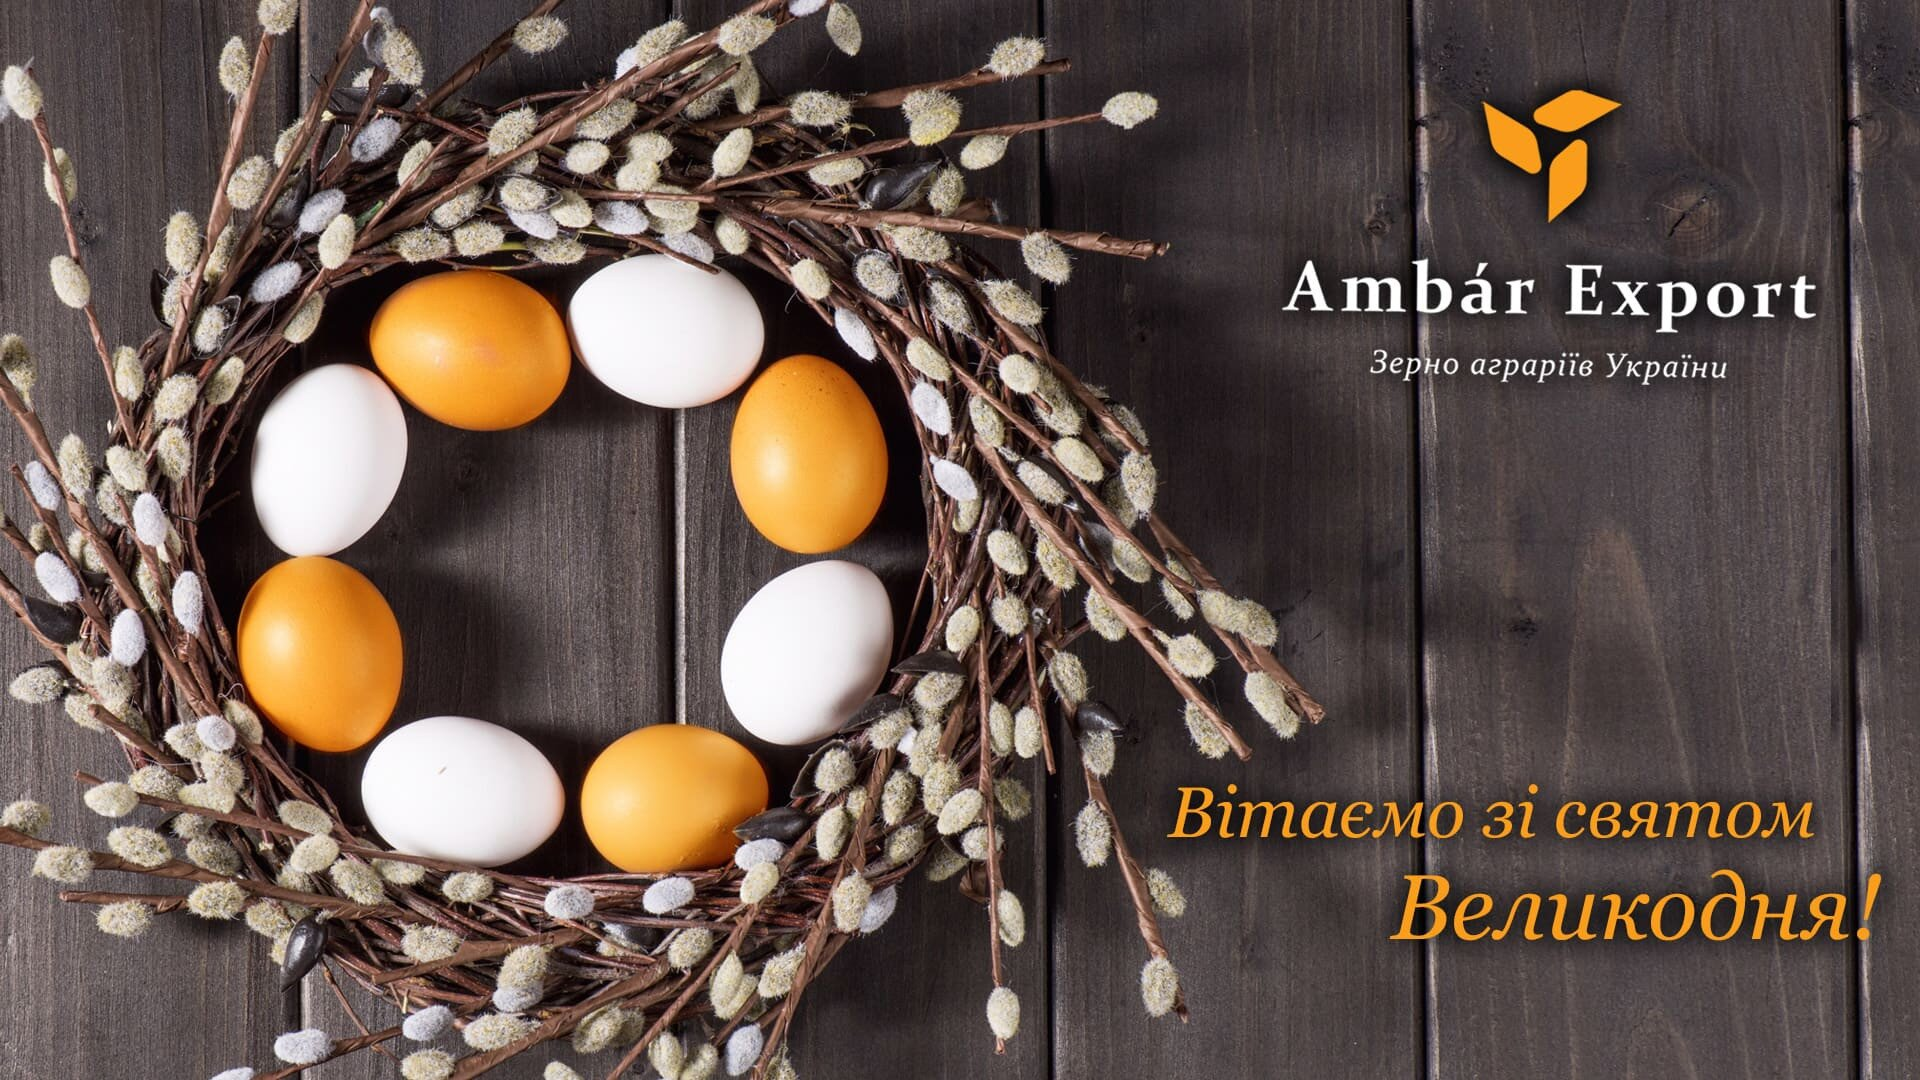 Easter greetings from Ambar Export BKW!